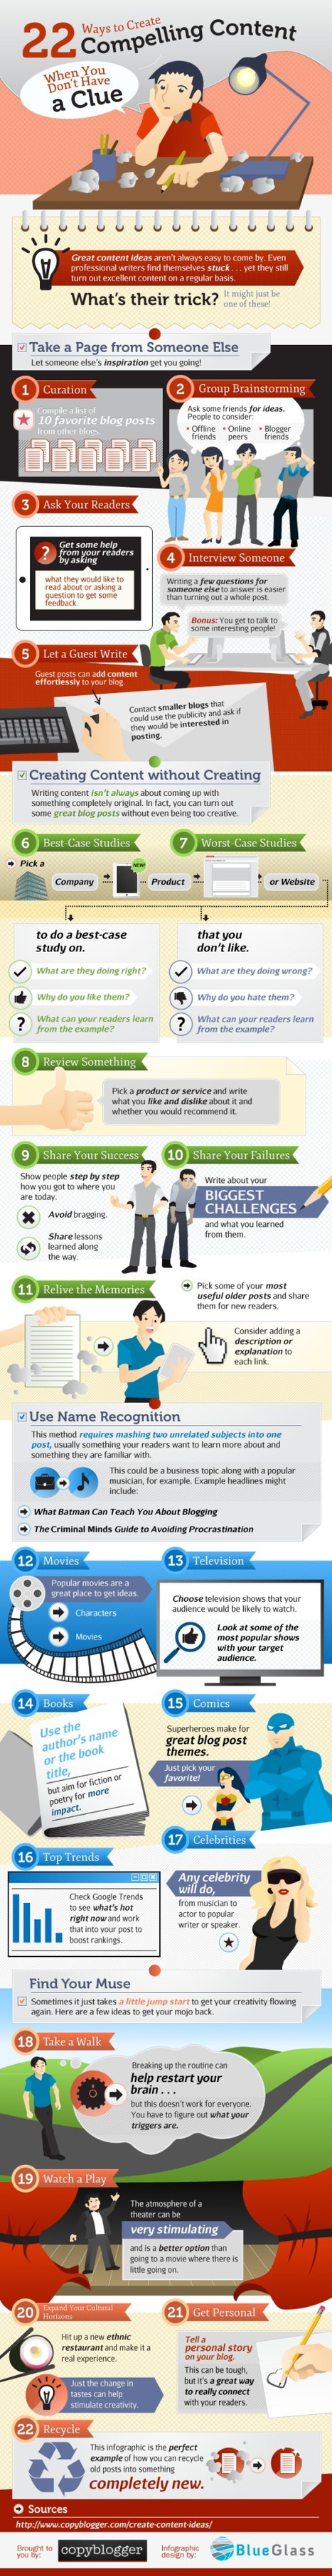 22 Ways to Create Compelling Content When You're Stumped [INFOGRAPHIC] | Personal  Marketing Strategy | Scoop.it